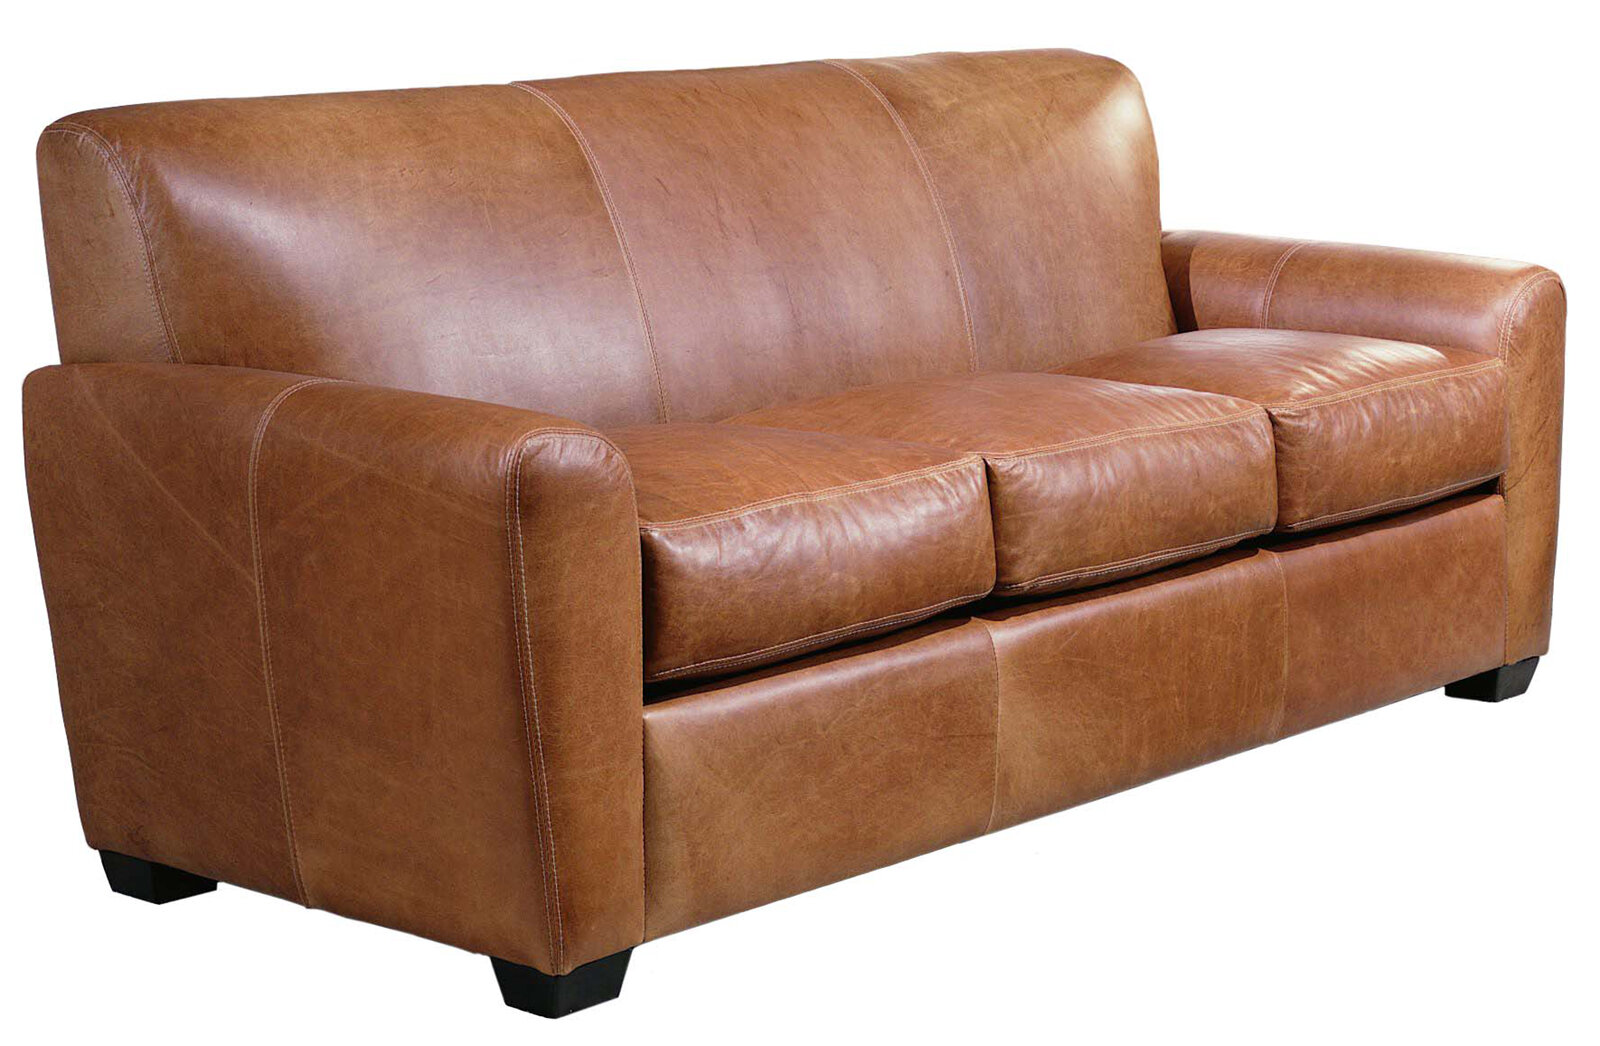 Leather Sleeper Sofa. Leather Sleeper Sofa Wayfair